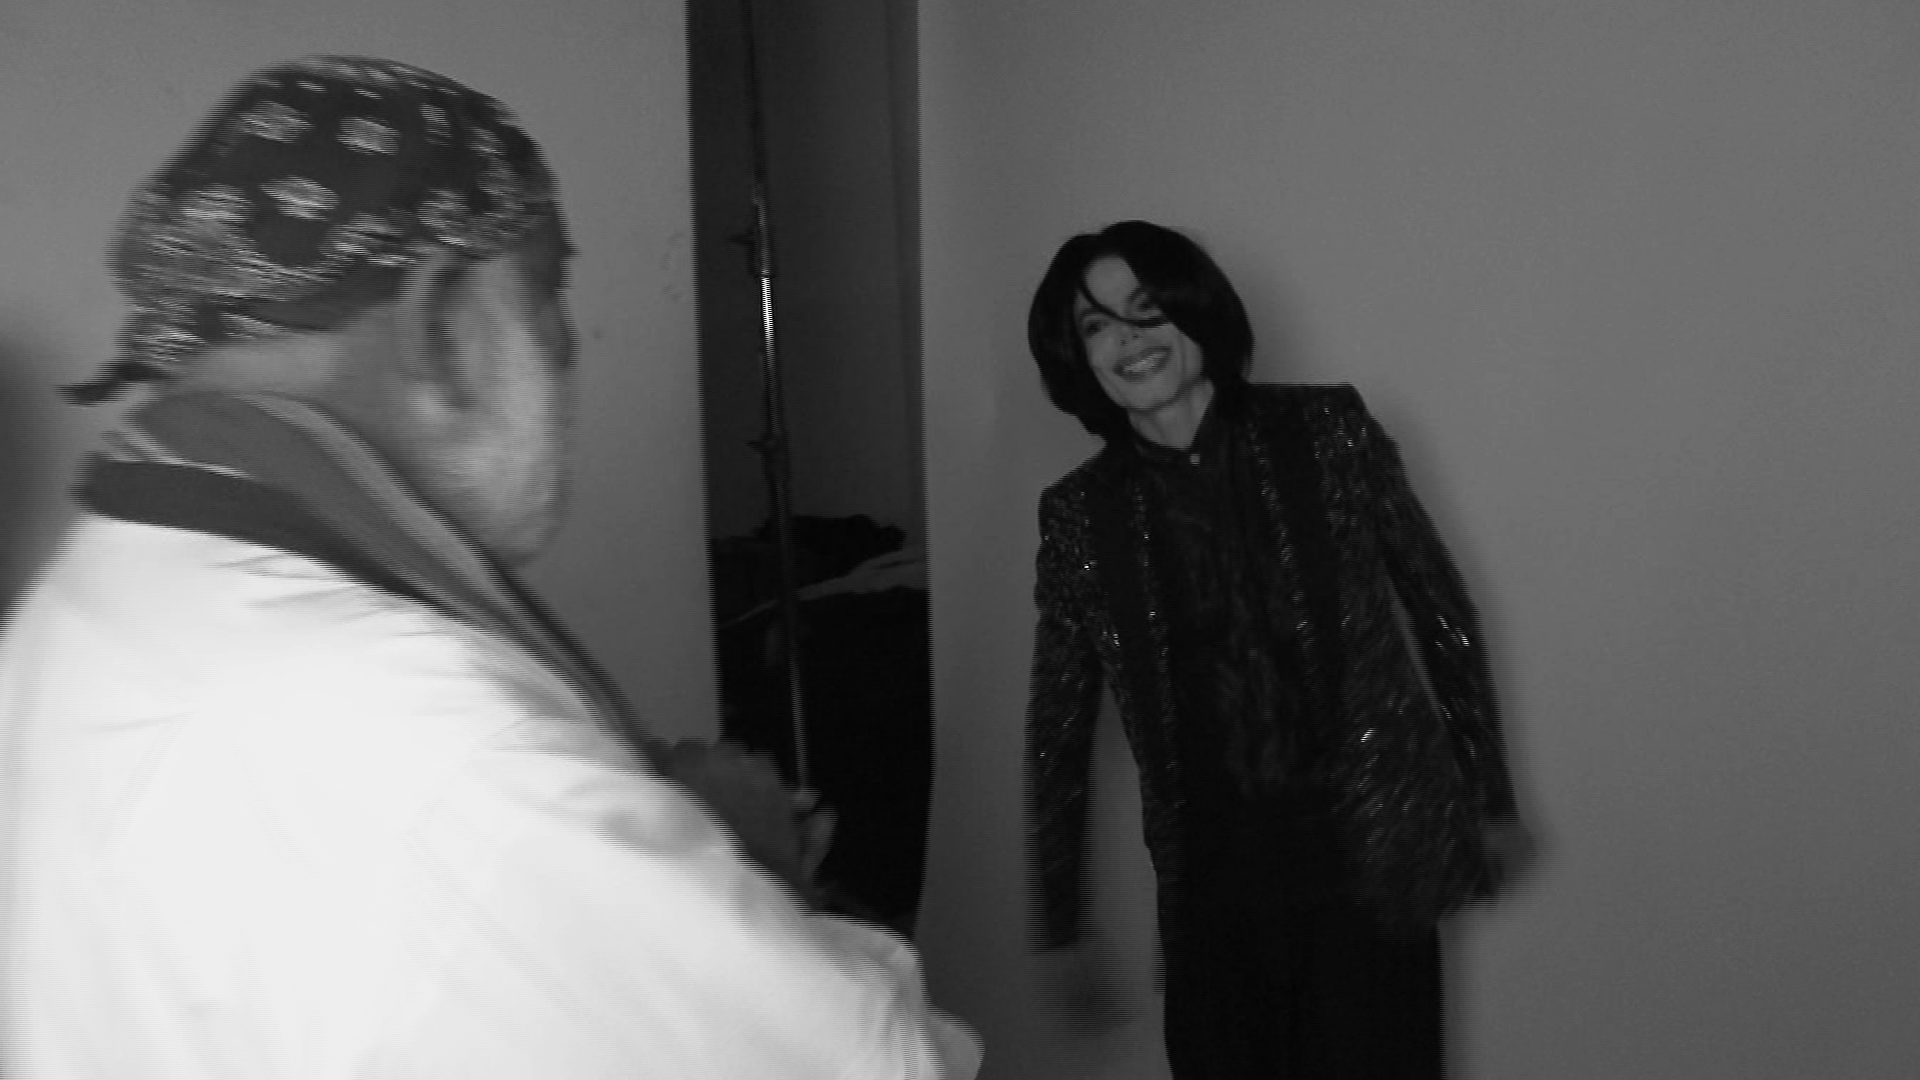 Fotos INÉDITAS do Michael Jackson para a revista VOGUE em 2007!Documentário em BREVE!  13a43ba4bef27730349b983900a58b2a?AccessKeyId=20A51431321DE138D651&disposition=0